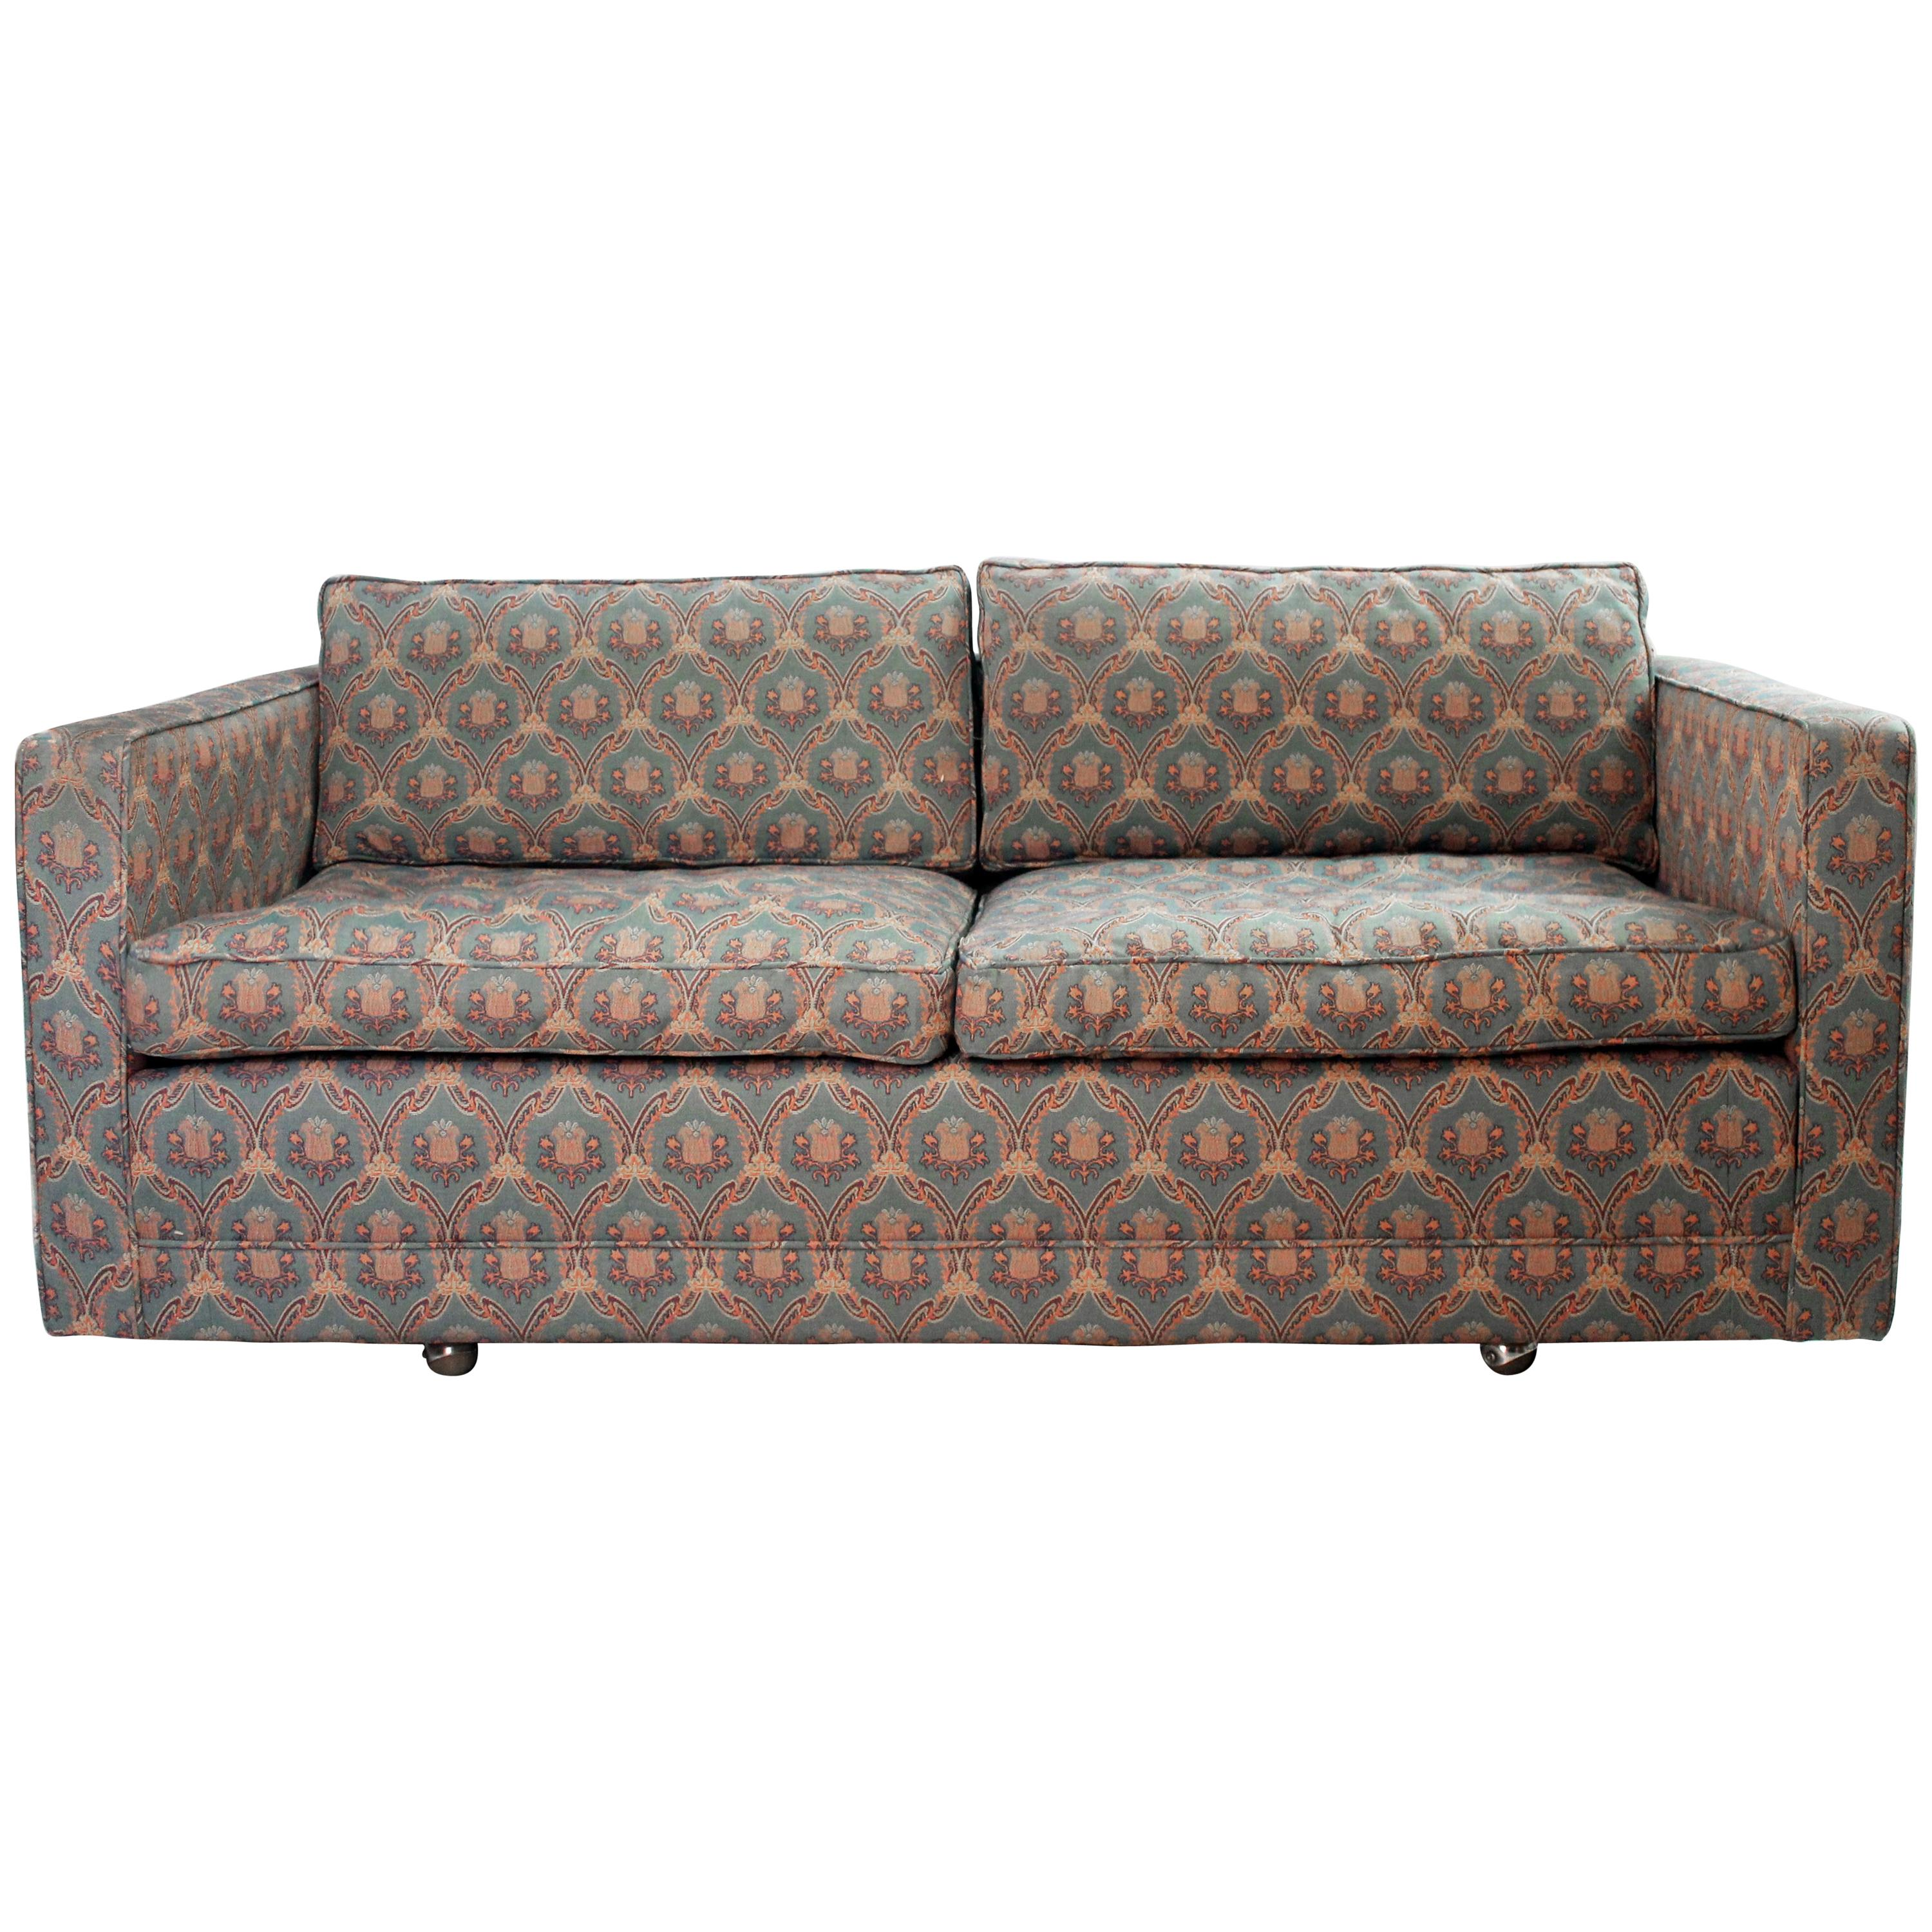 Sofa Vintage A Vendre Edward Wormley Sofas 139 For Sale At 1stdibs